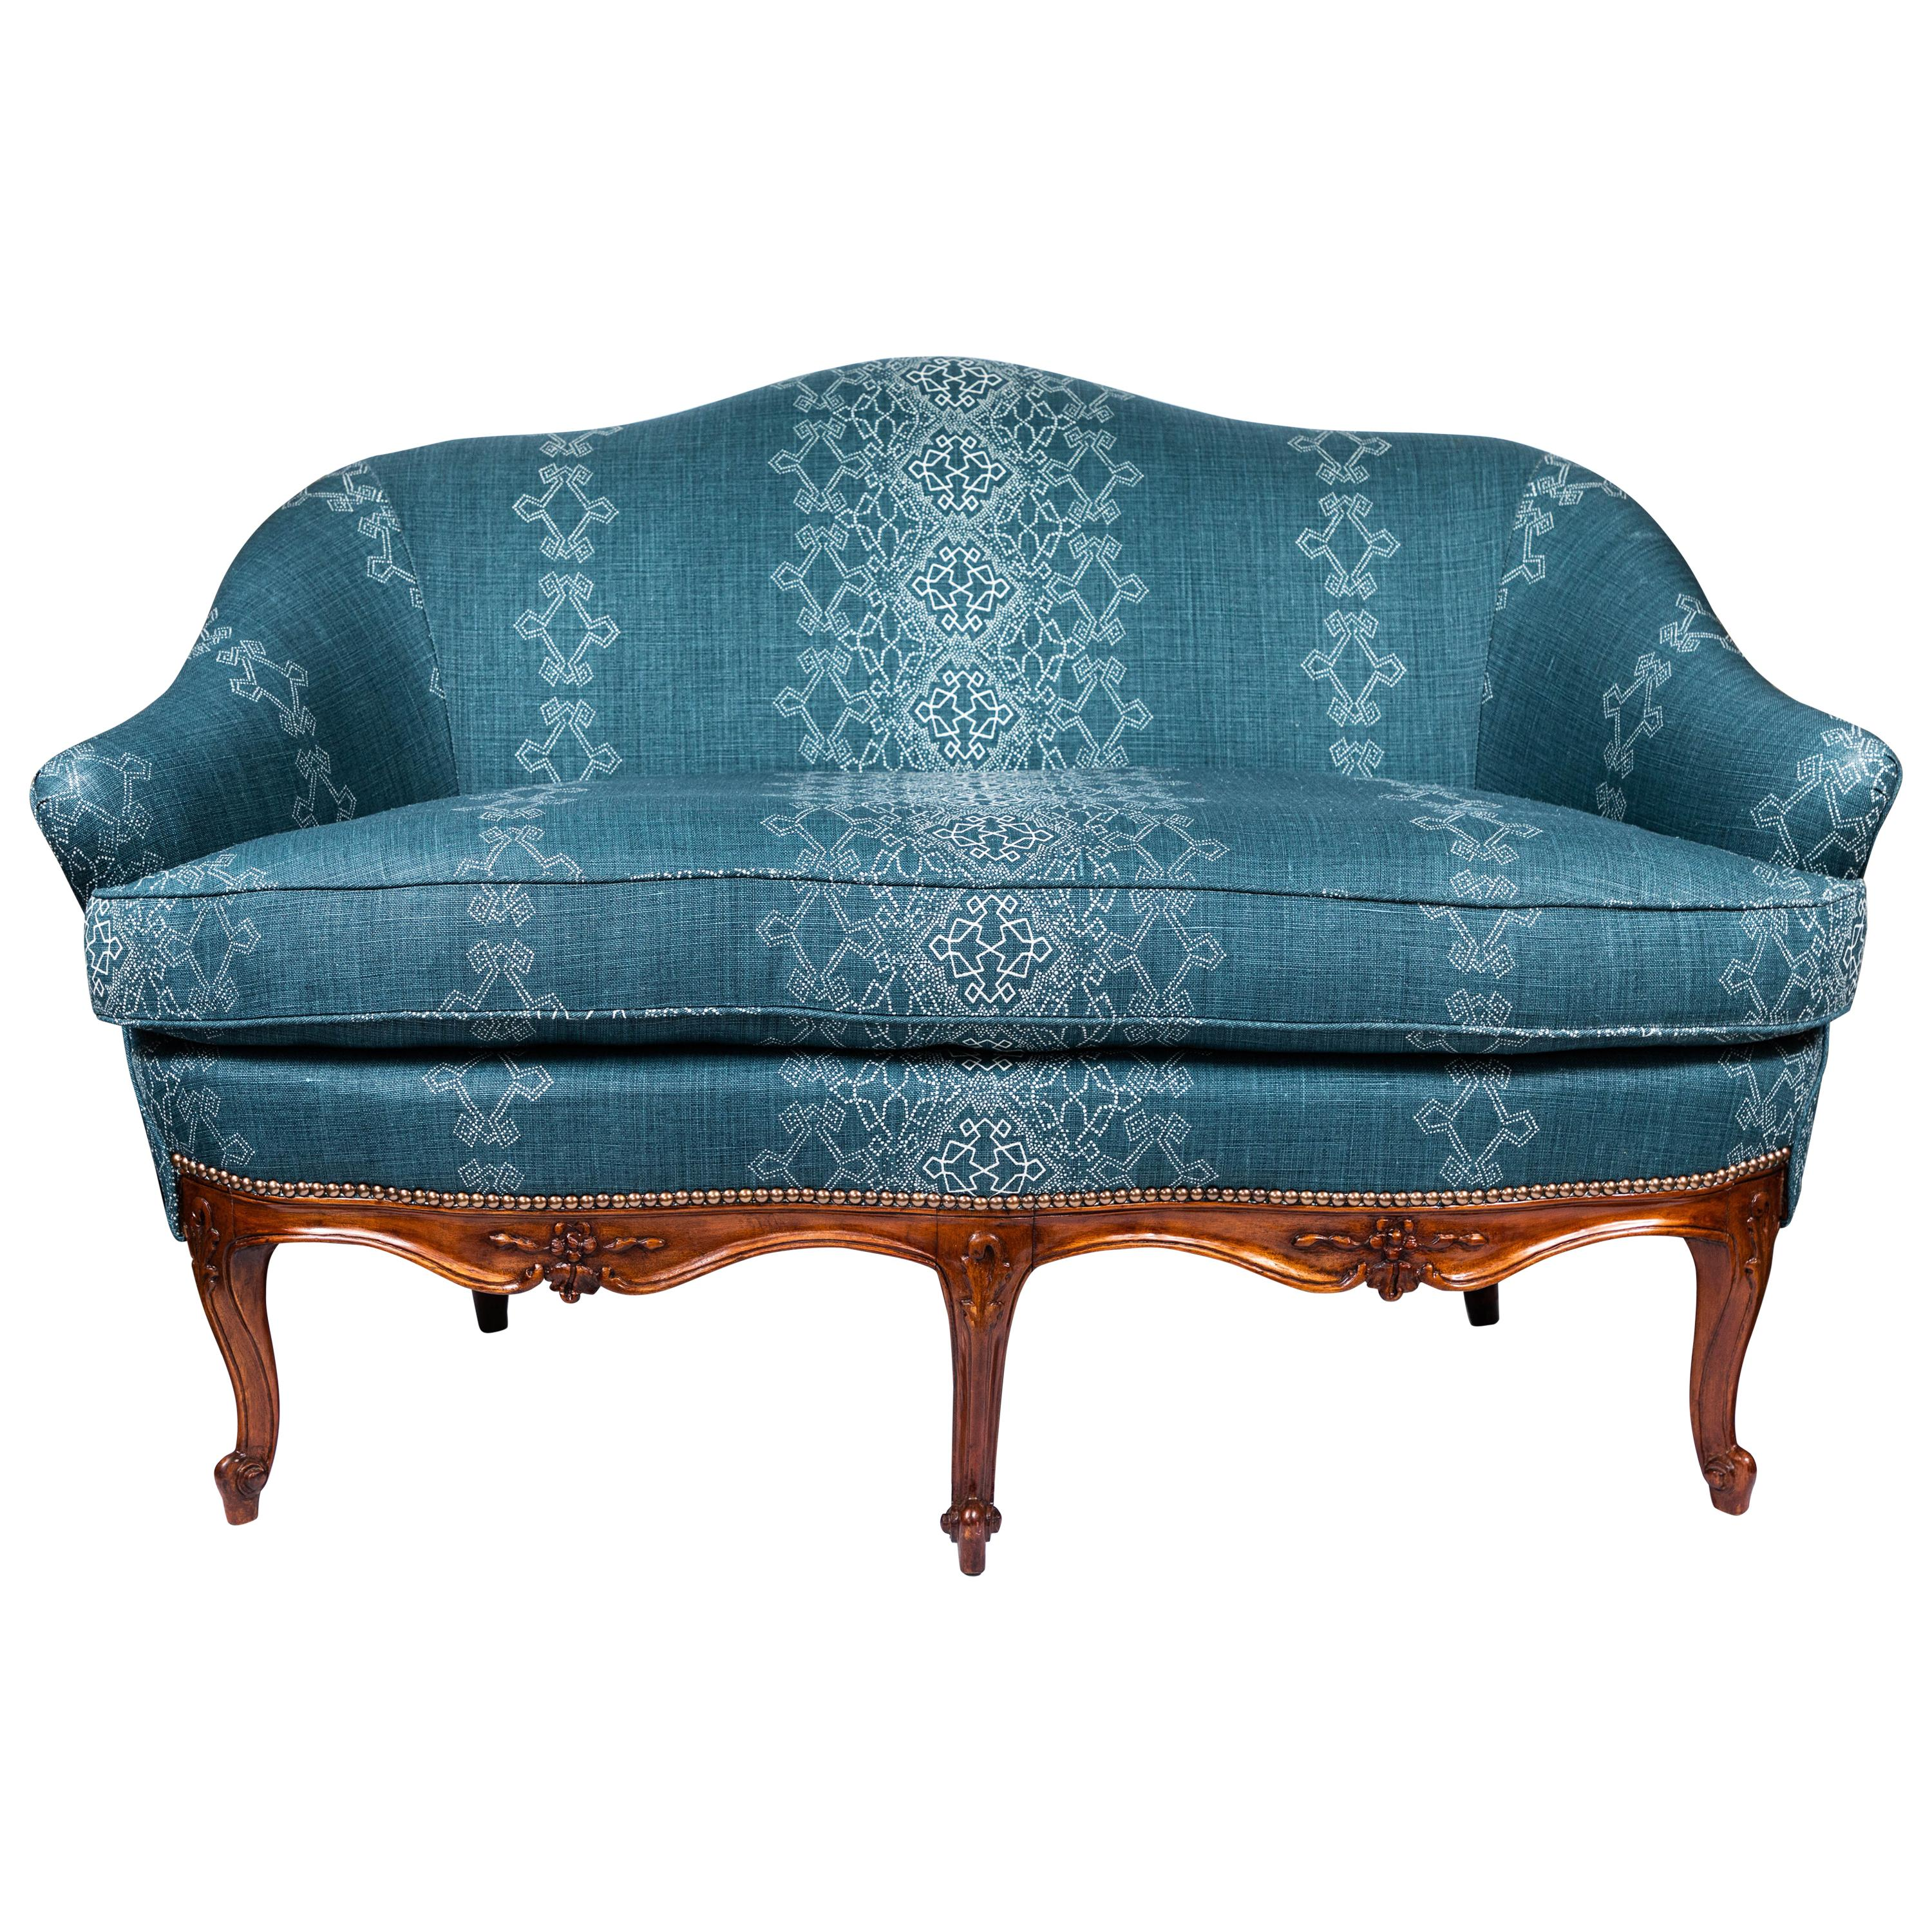 Sofa Queen Anne 1940s Settee With Three Queen Anne Style Front Legs And Carvings